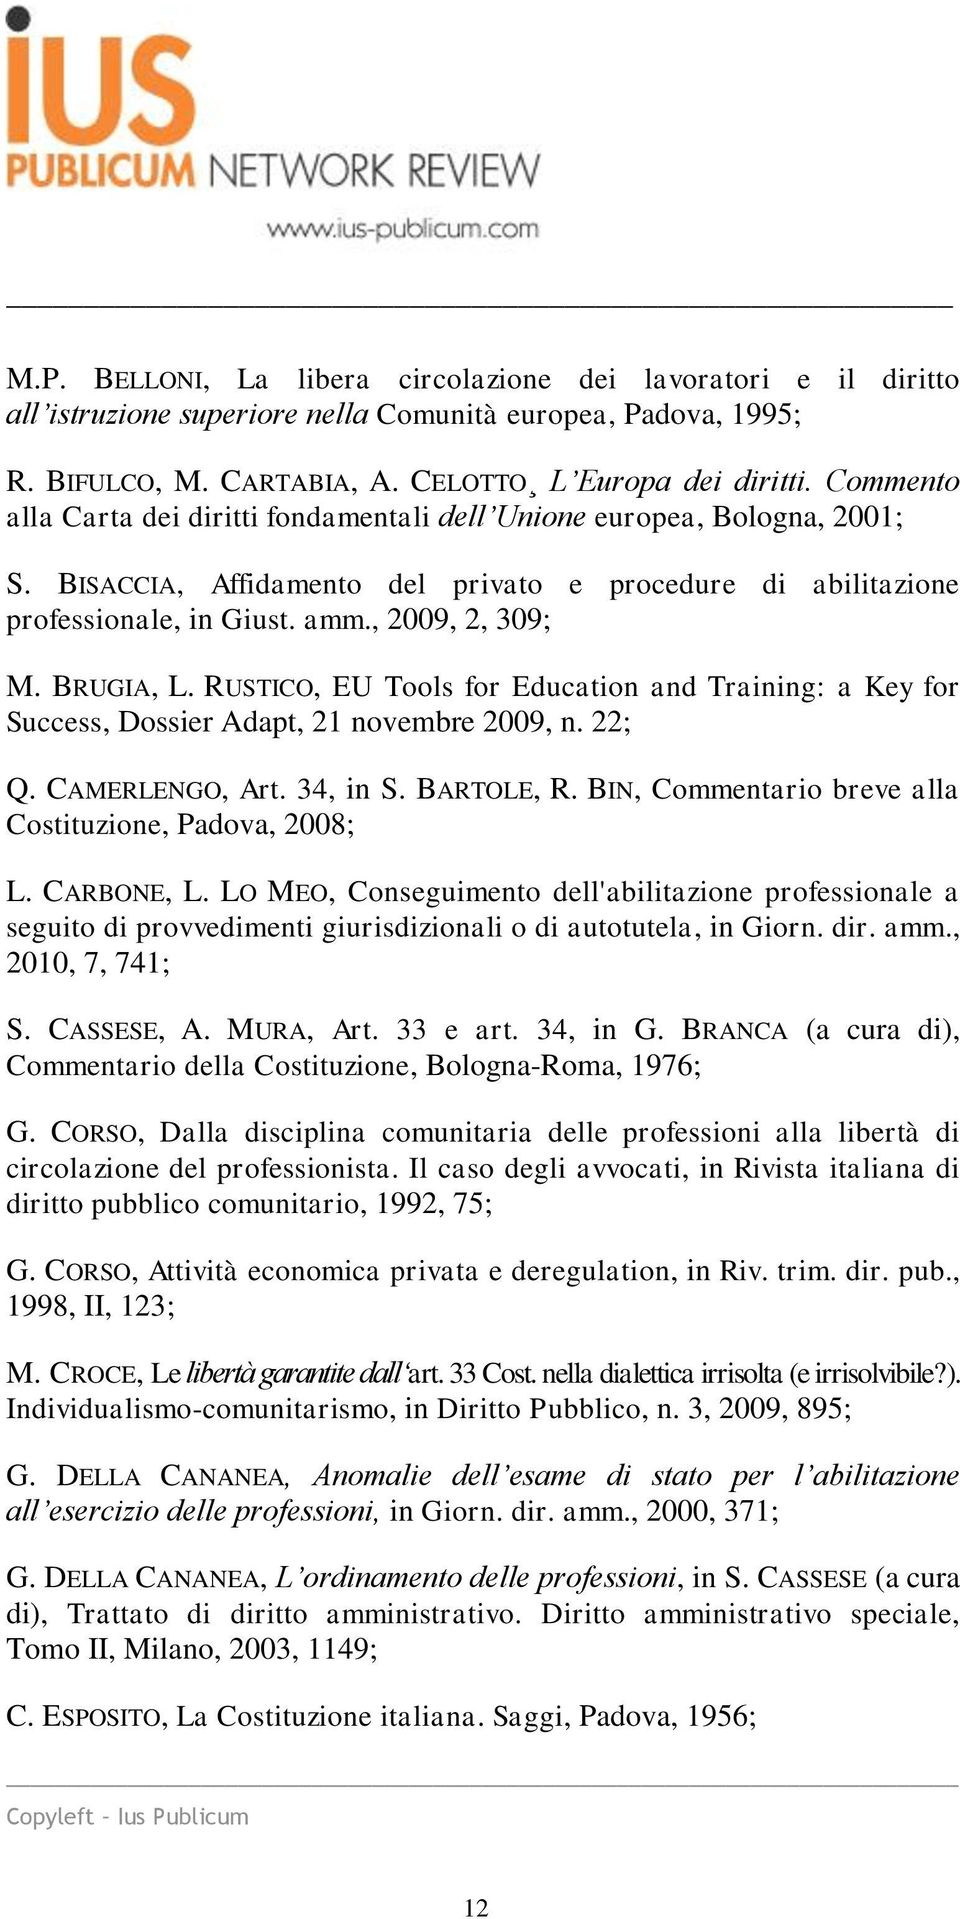 BRUGIA, L. RUSTICO, EU Tools for Education and Training: a Key for Success, Dossier Adapt, 21 novembre 2009, n. 22; Q. CAMERLENGO, Art. 34, in S. BARTOLE, R.